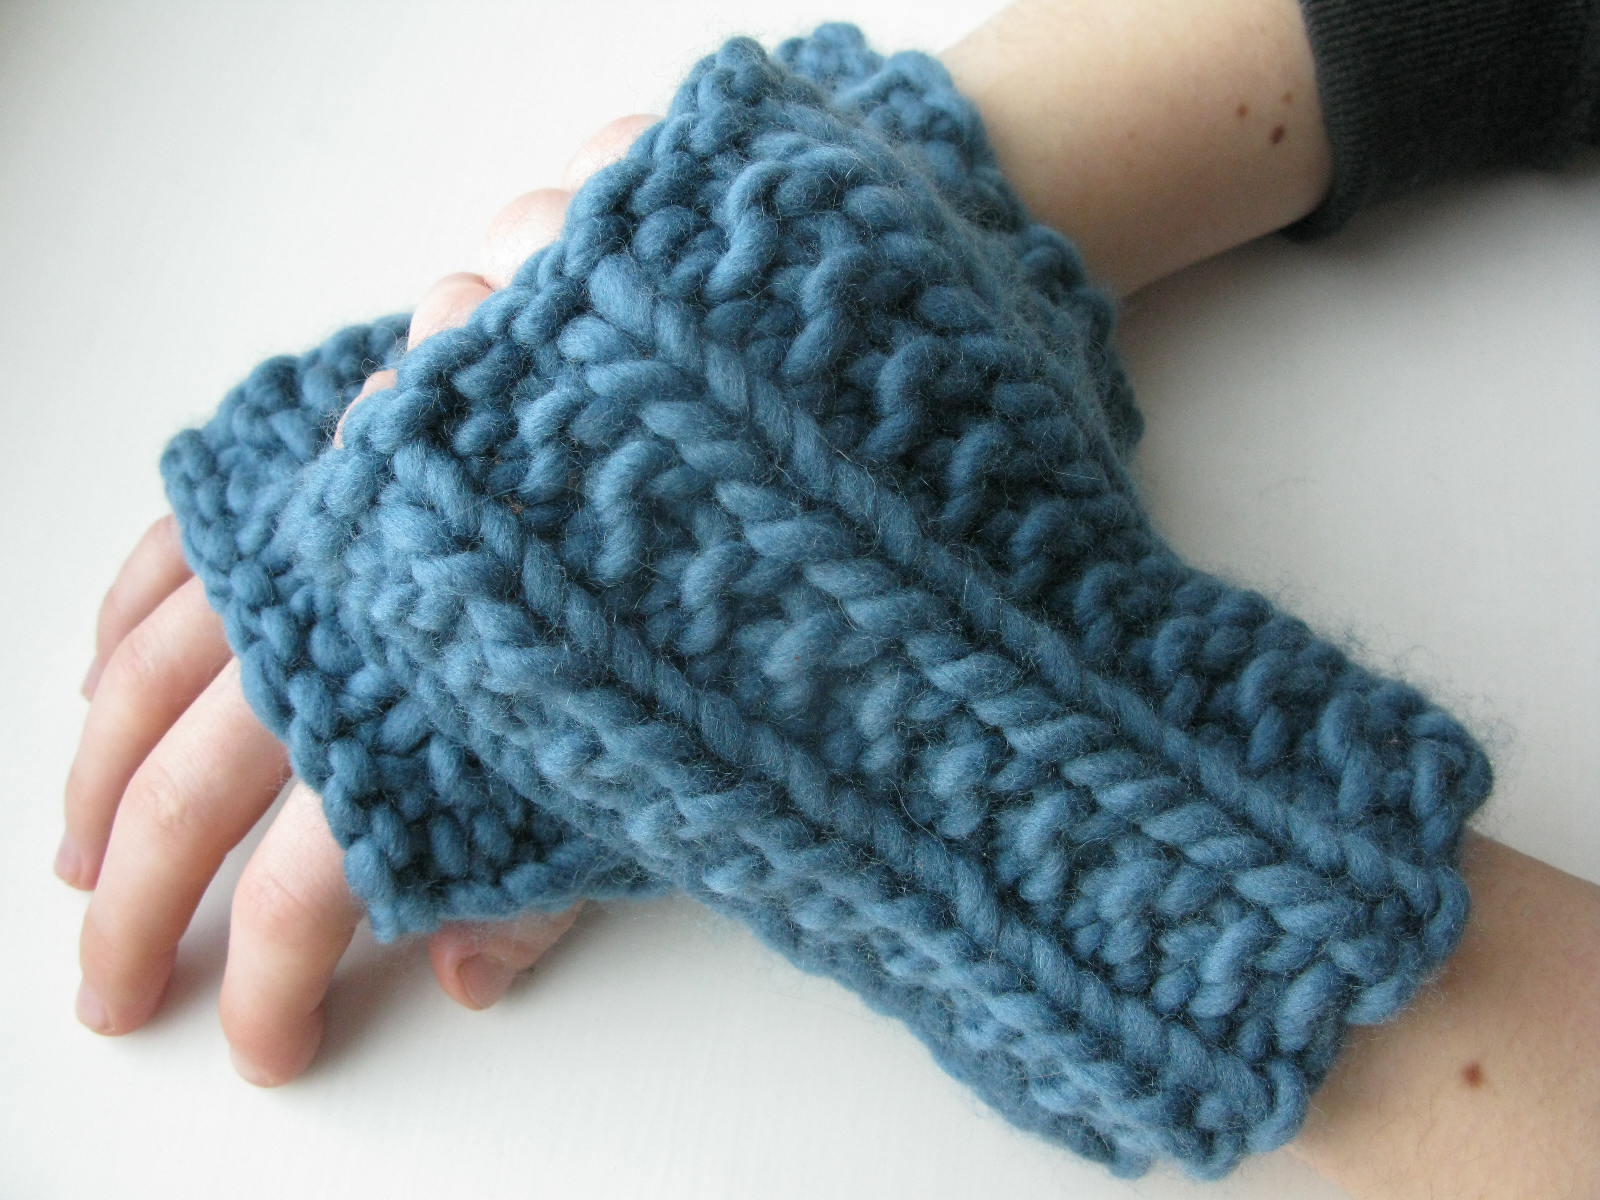 Knitting Patterns Super Bulky Yarn : littletheorem: Carsaig Wristwarmers